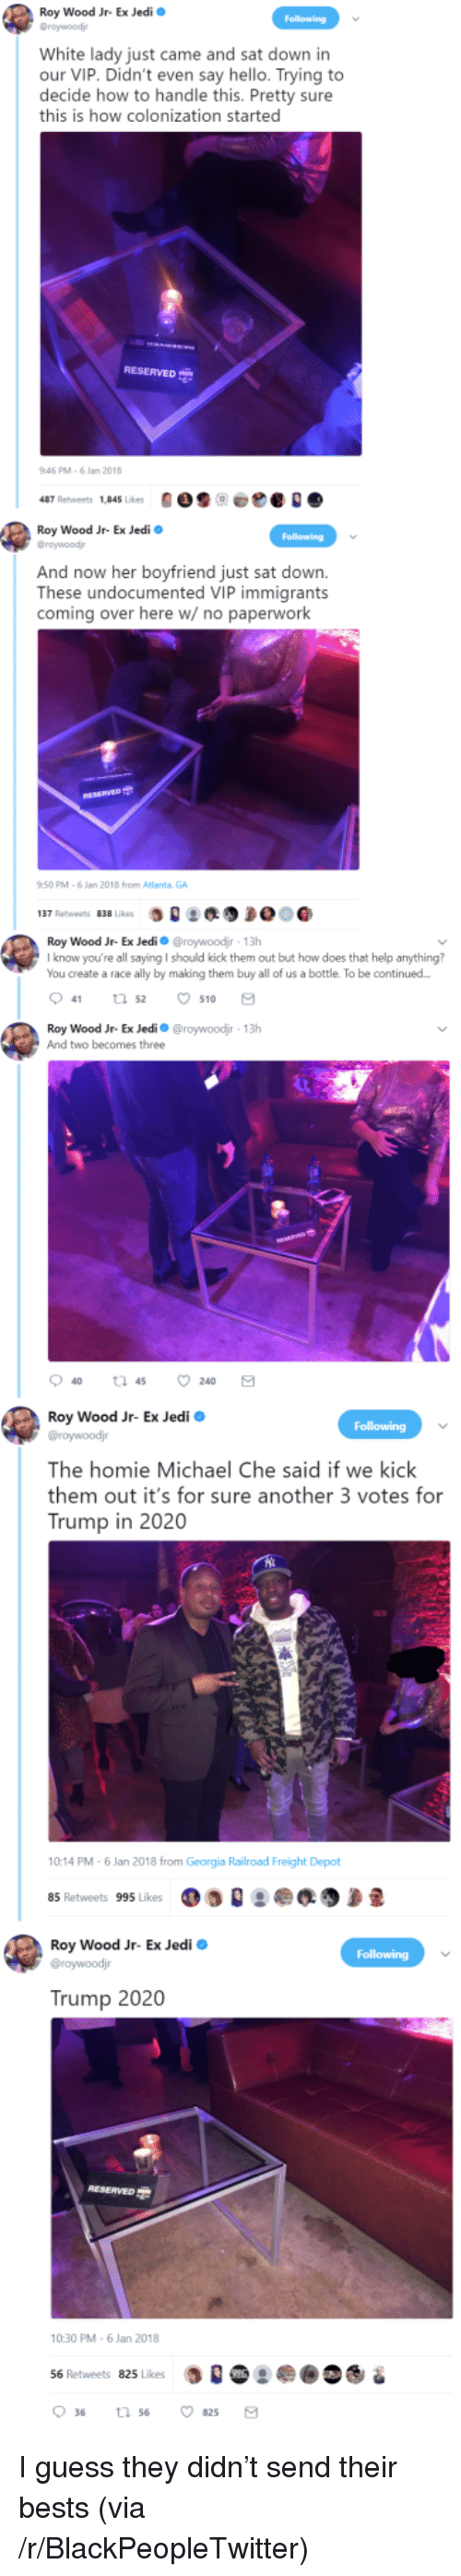 bests: Roy Wood Jr- Ex Jedi  Graywoodj  White lady just came and sat down in  our VIP. Didn't even say hello. Trying to  decide how to handle this. Pretty sure  this is how colonization started  RESERVED  46 PM-6 Jan 2018  487 Retweets 1,845 Likes900e  Roy Wood Jr- Ex Jedi  Groywoodj  And now her boyfriend just sat down.  These undocumented VIP immigrants  coming over here w/ no paperwork  50 PM-6 Jan 2018 from Atlanta GA  :缑  137 Retweets 838 Likes  Roy Wood Jr-Ex Jedi Ф @roywoodir , 13h  I know you're all saying I should kick them out but how does that help anything?  You create a race ally by making them buy all of us a bottle. To be continued  041 52 ㅇ510  Roy Wood Jr- Ex Jedio @roywoodjr 13h  And two becomes three  Roy Wood Jr- Ex Jedi o  The homie Michael Che said if we kick  them out it's for sure another 3 votes for  Trump in 2020  10:14 PM-6 Jan 2018 from Georgia Railroad Freight Depot  85 Retweets 995 Likes  Roy Wood Jr- Ex Jedi  Trump 2020  10:30 PM-6 Jan 2018  56 Retweets 825 Likes  0 36 <p>I guess they didn&rsquo;t send their bests (via /r/BlackPeopleTwitter)</p>